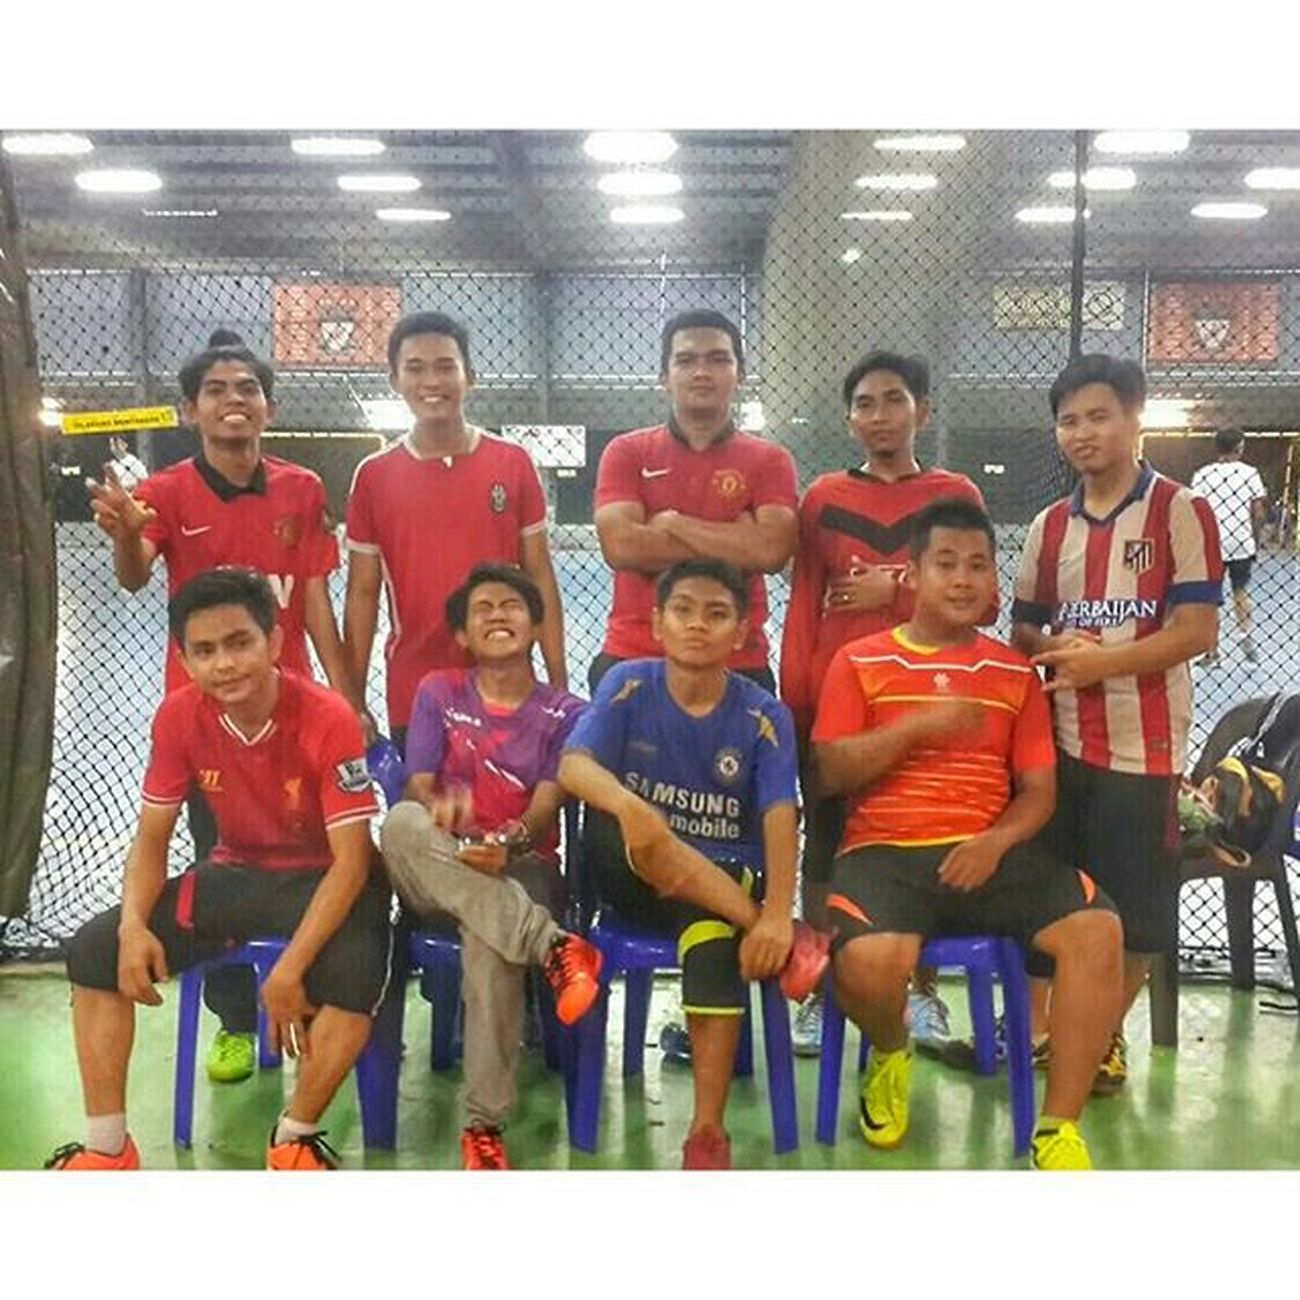 Not bad for 1st friendly match. Our 1st futsal game together as one team. One for All, All for One. Family is the only words that end with ily ( i love you ). My family is my team, my team is family. Bonding getting stronger huh .Futsal FamilyTime Sim2 Sandakan Jambatan7 Cousins